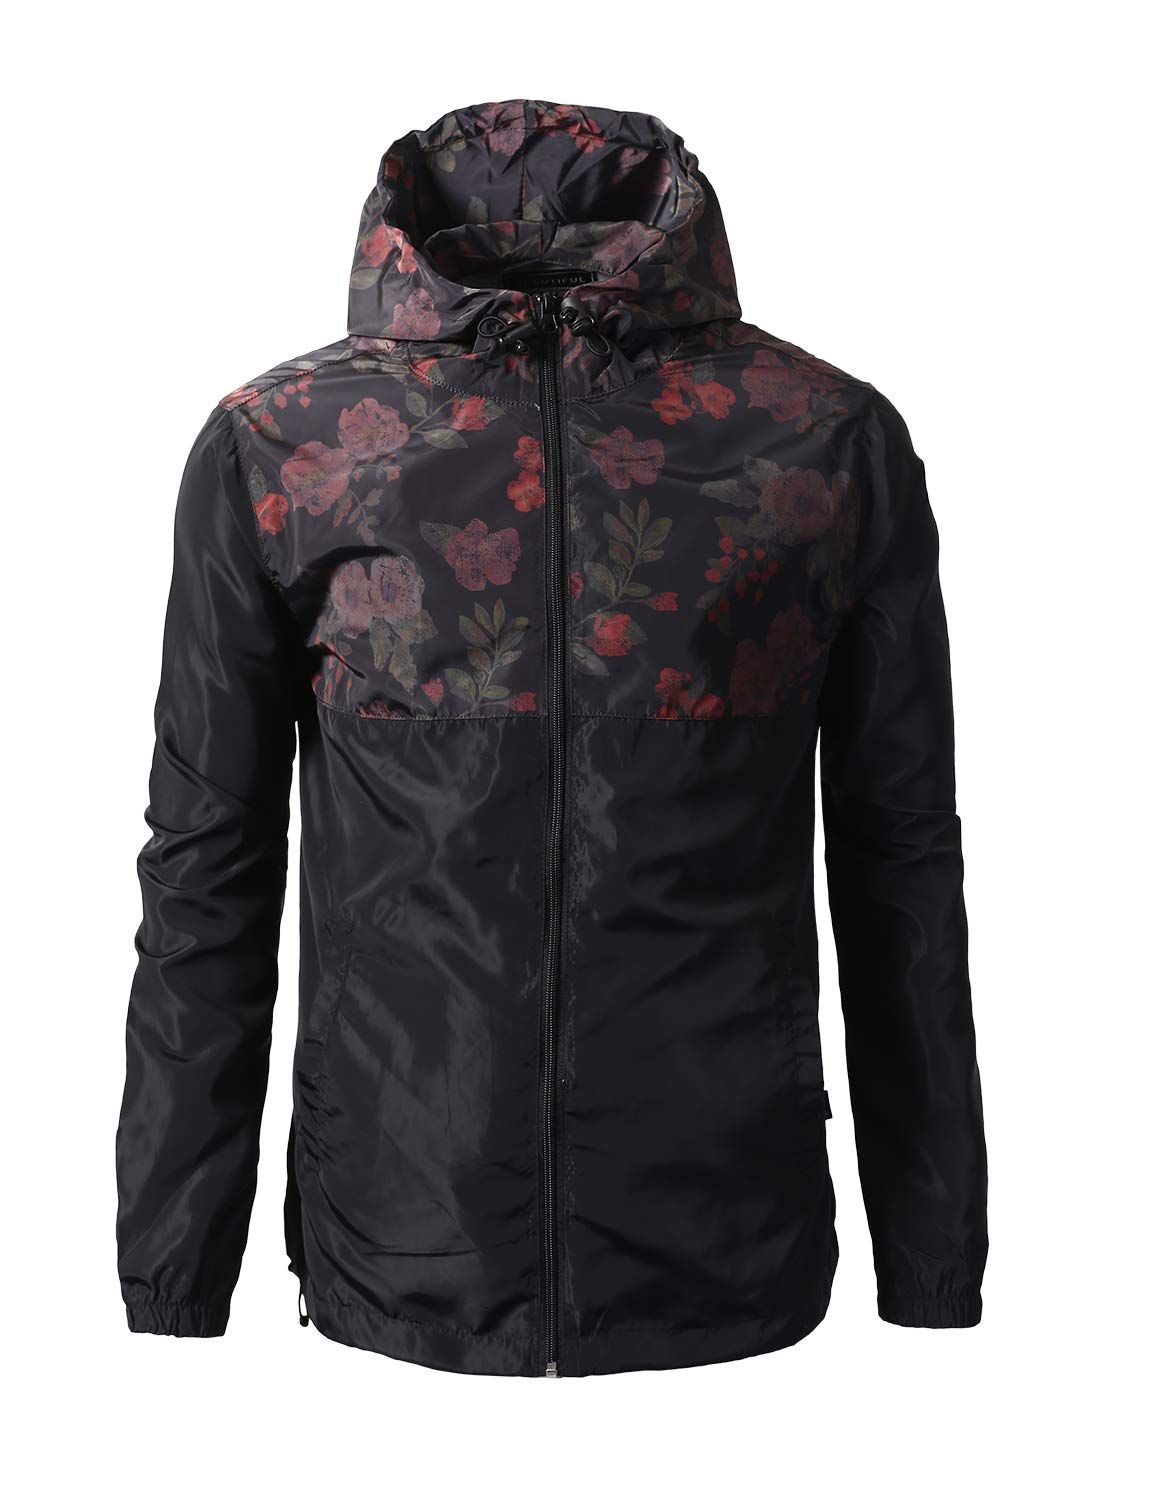 URBANCREWS Mens Hipster Floral Color Block Full Zip-Up Light Weight Windbreaker Jacket - Black - S by URBANCREWS